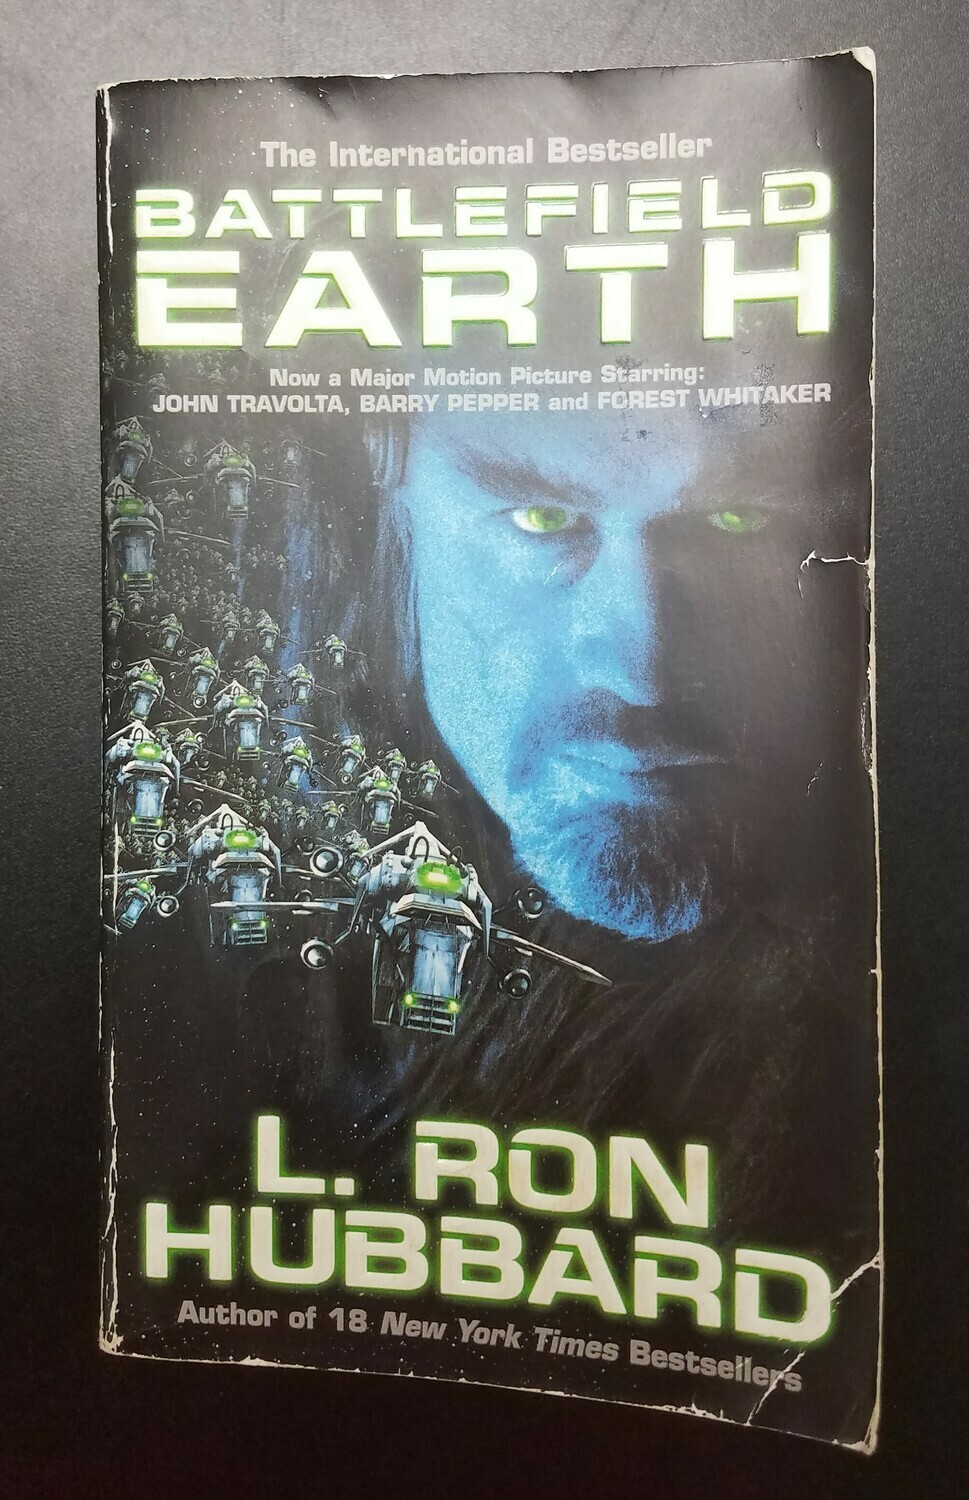 Battlefied Earth by L. Ron Hubbard